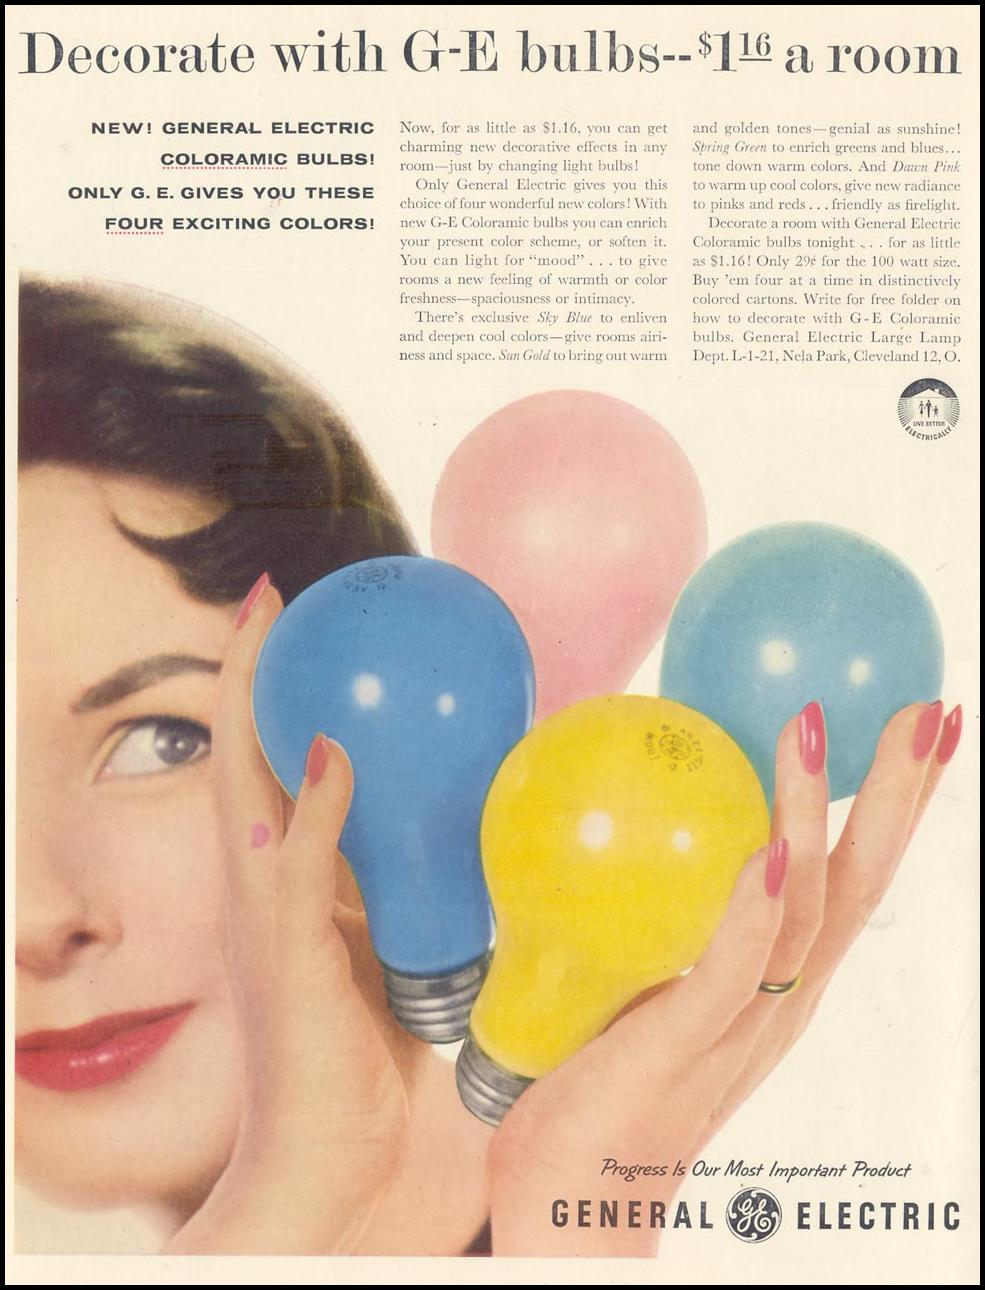 GENERAL ELECTRIC COLORAMIC LIGHT BULBS LIFE 01/21/1957 INSIDE FRONT